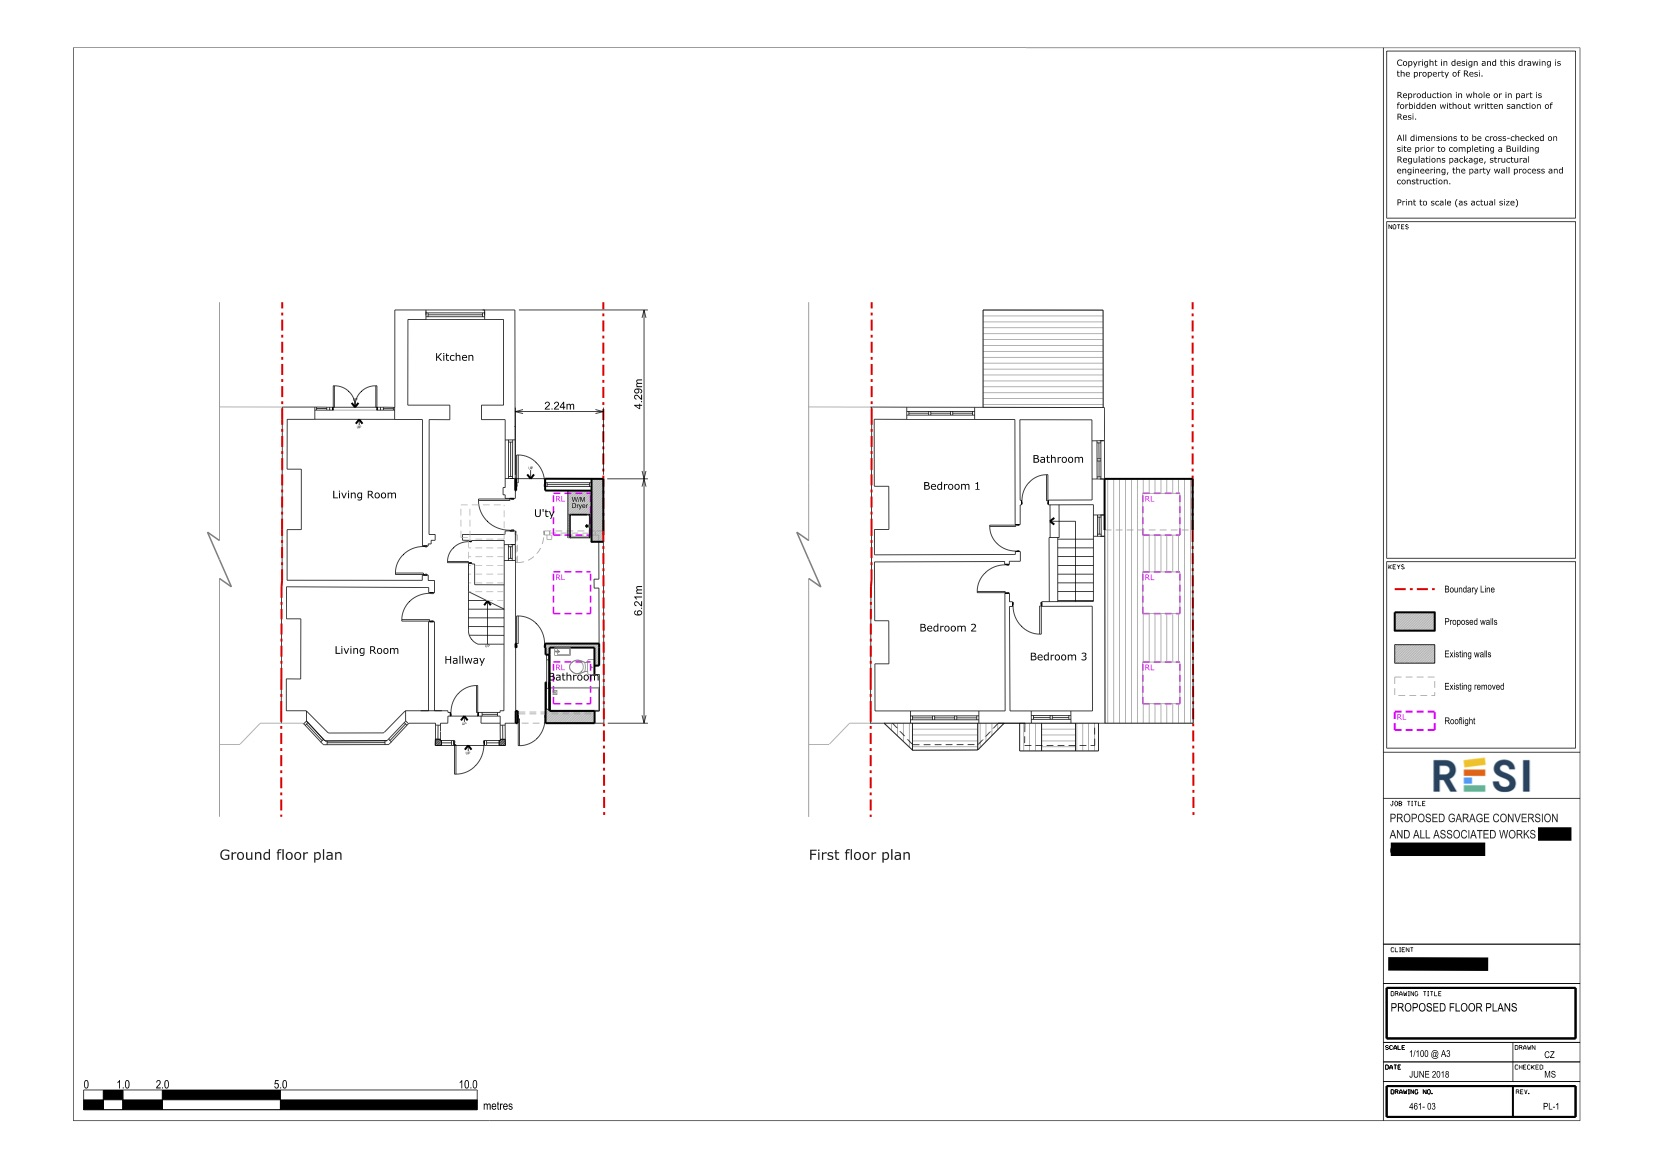 Architectural drawing set planning   ground and first floor plans